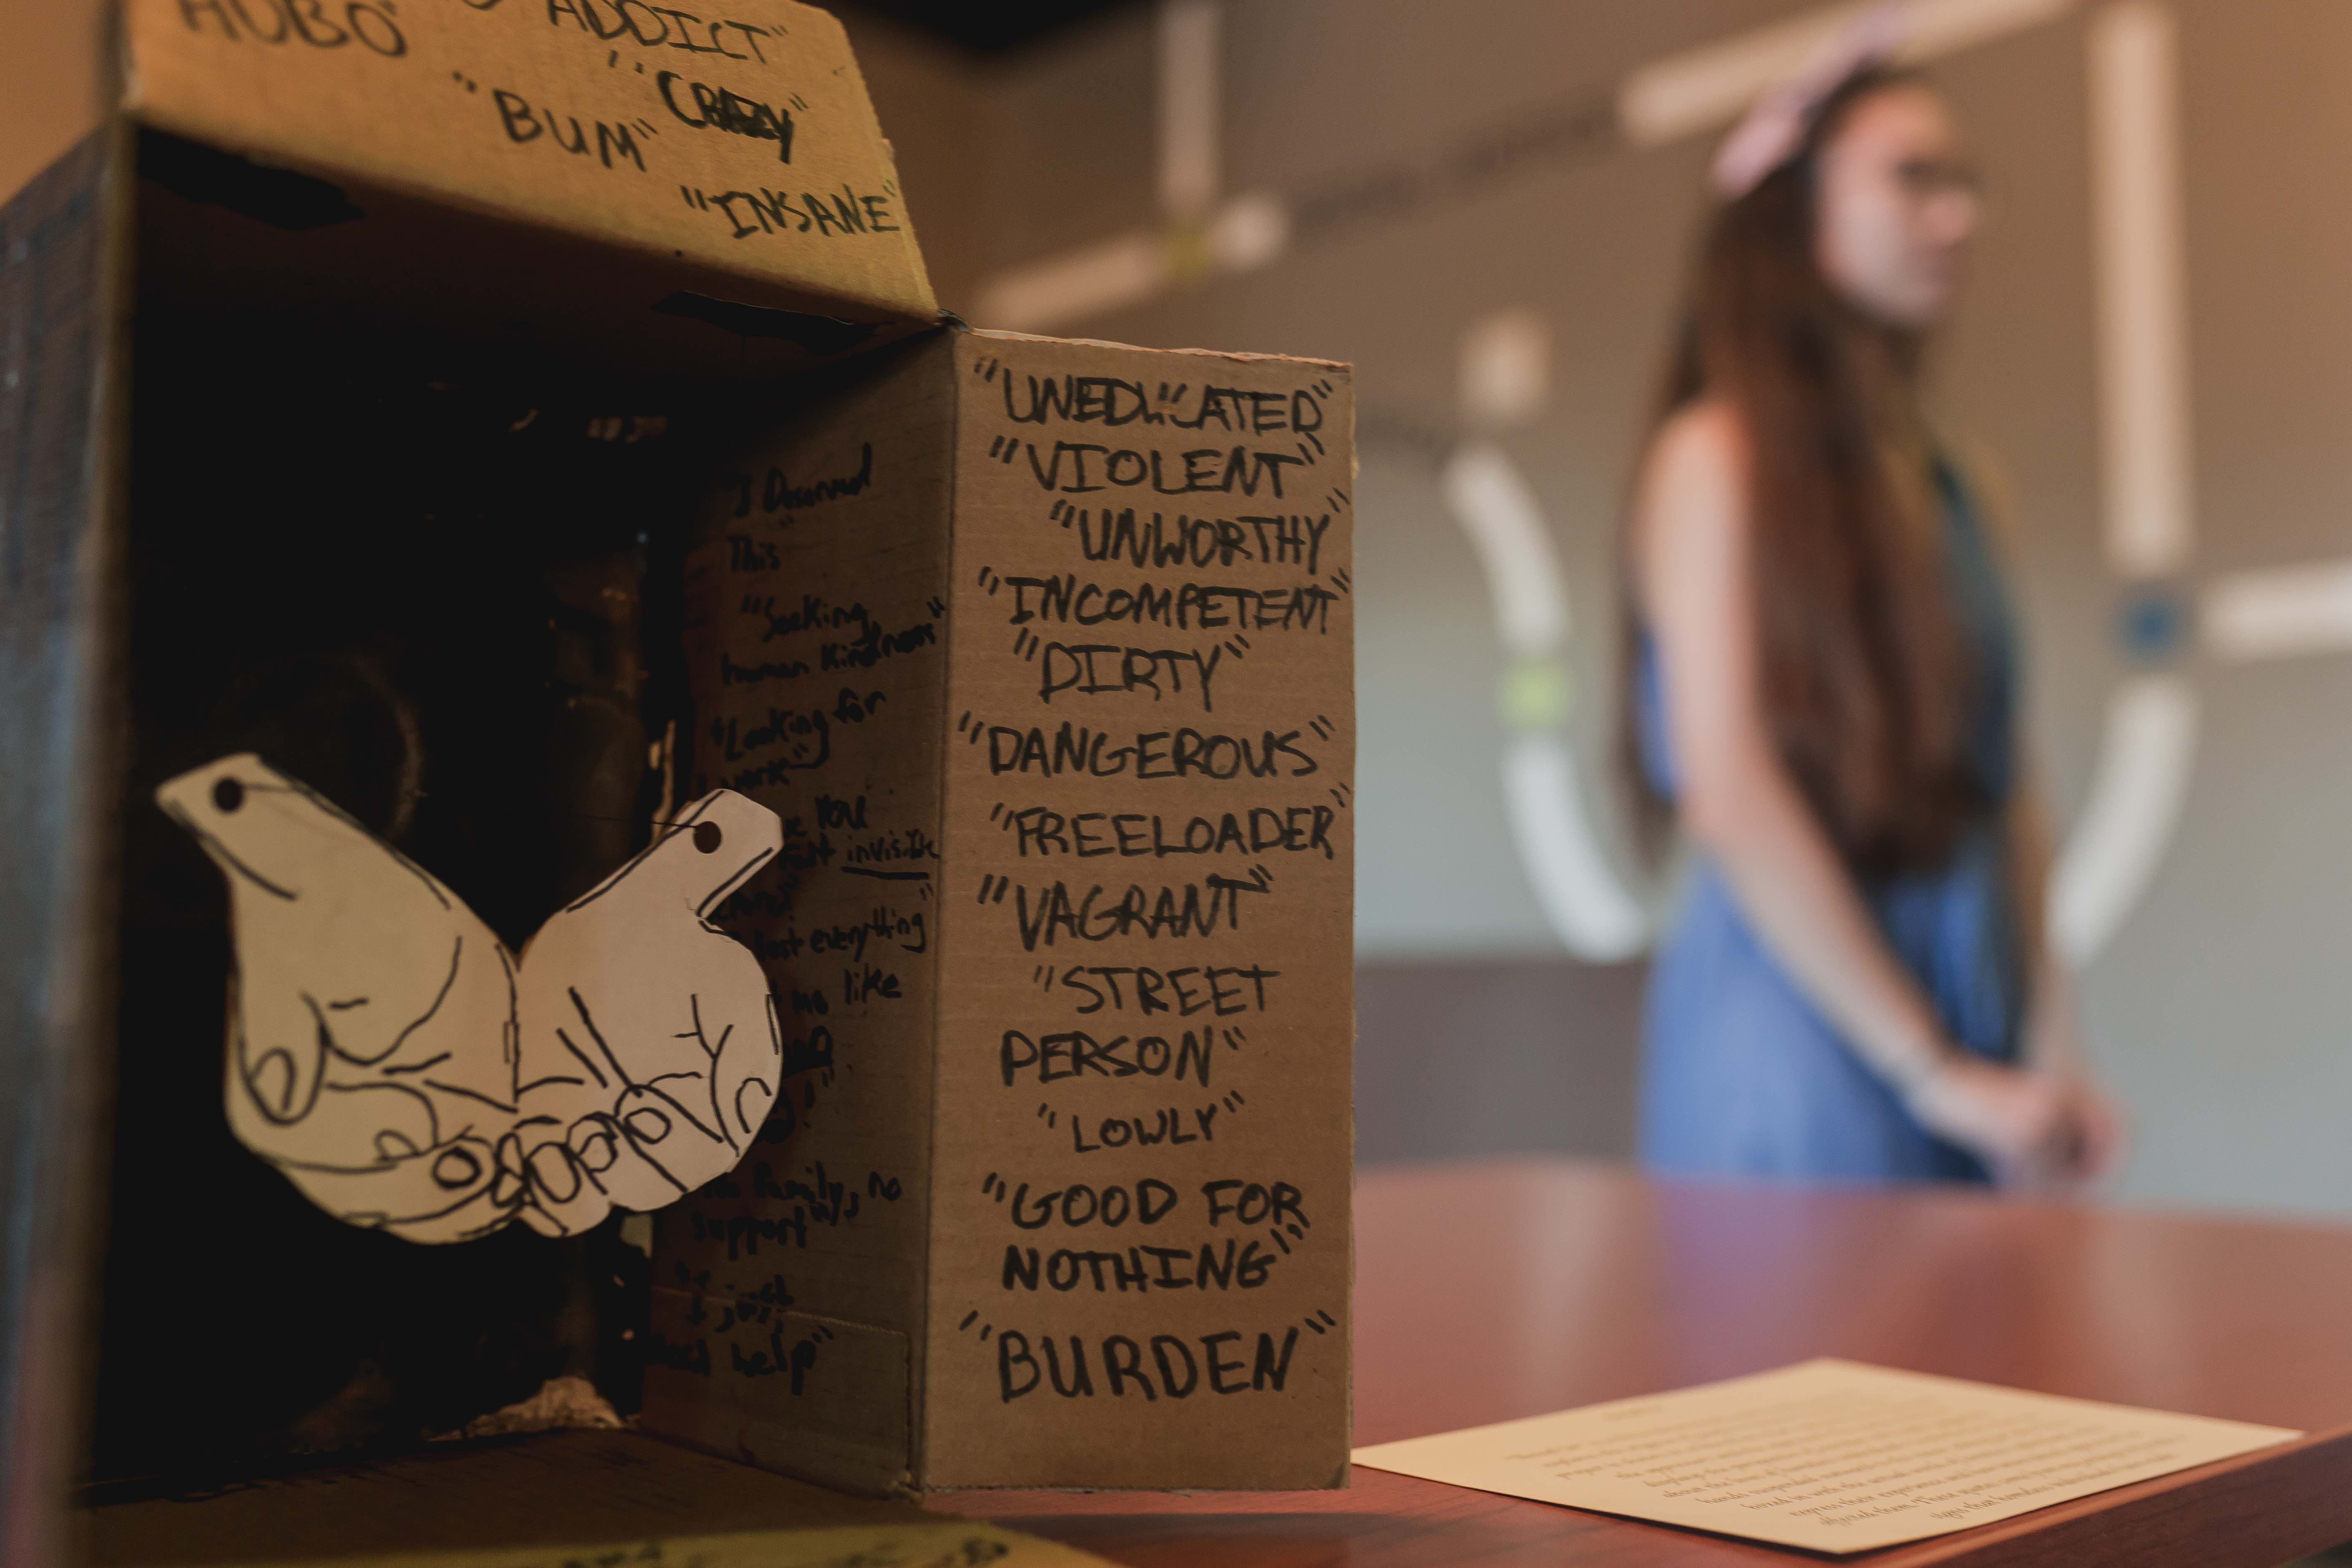 Students present creative discussion of social justice issues